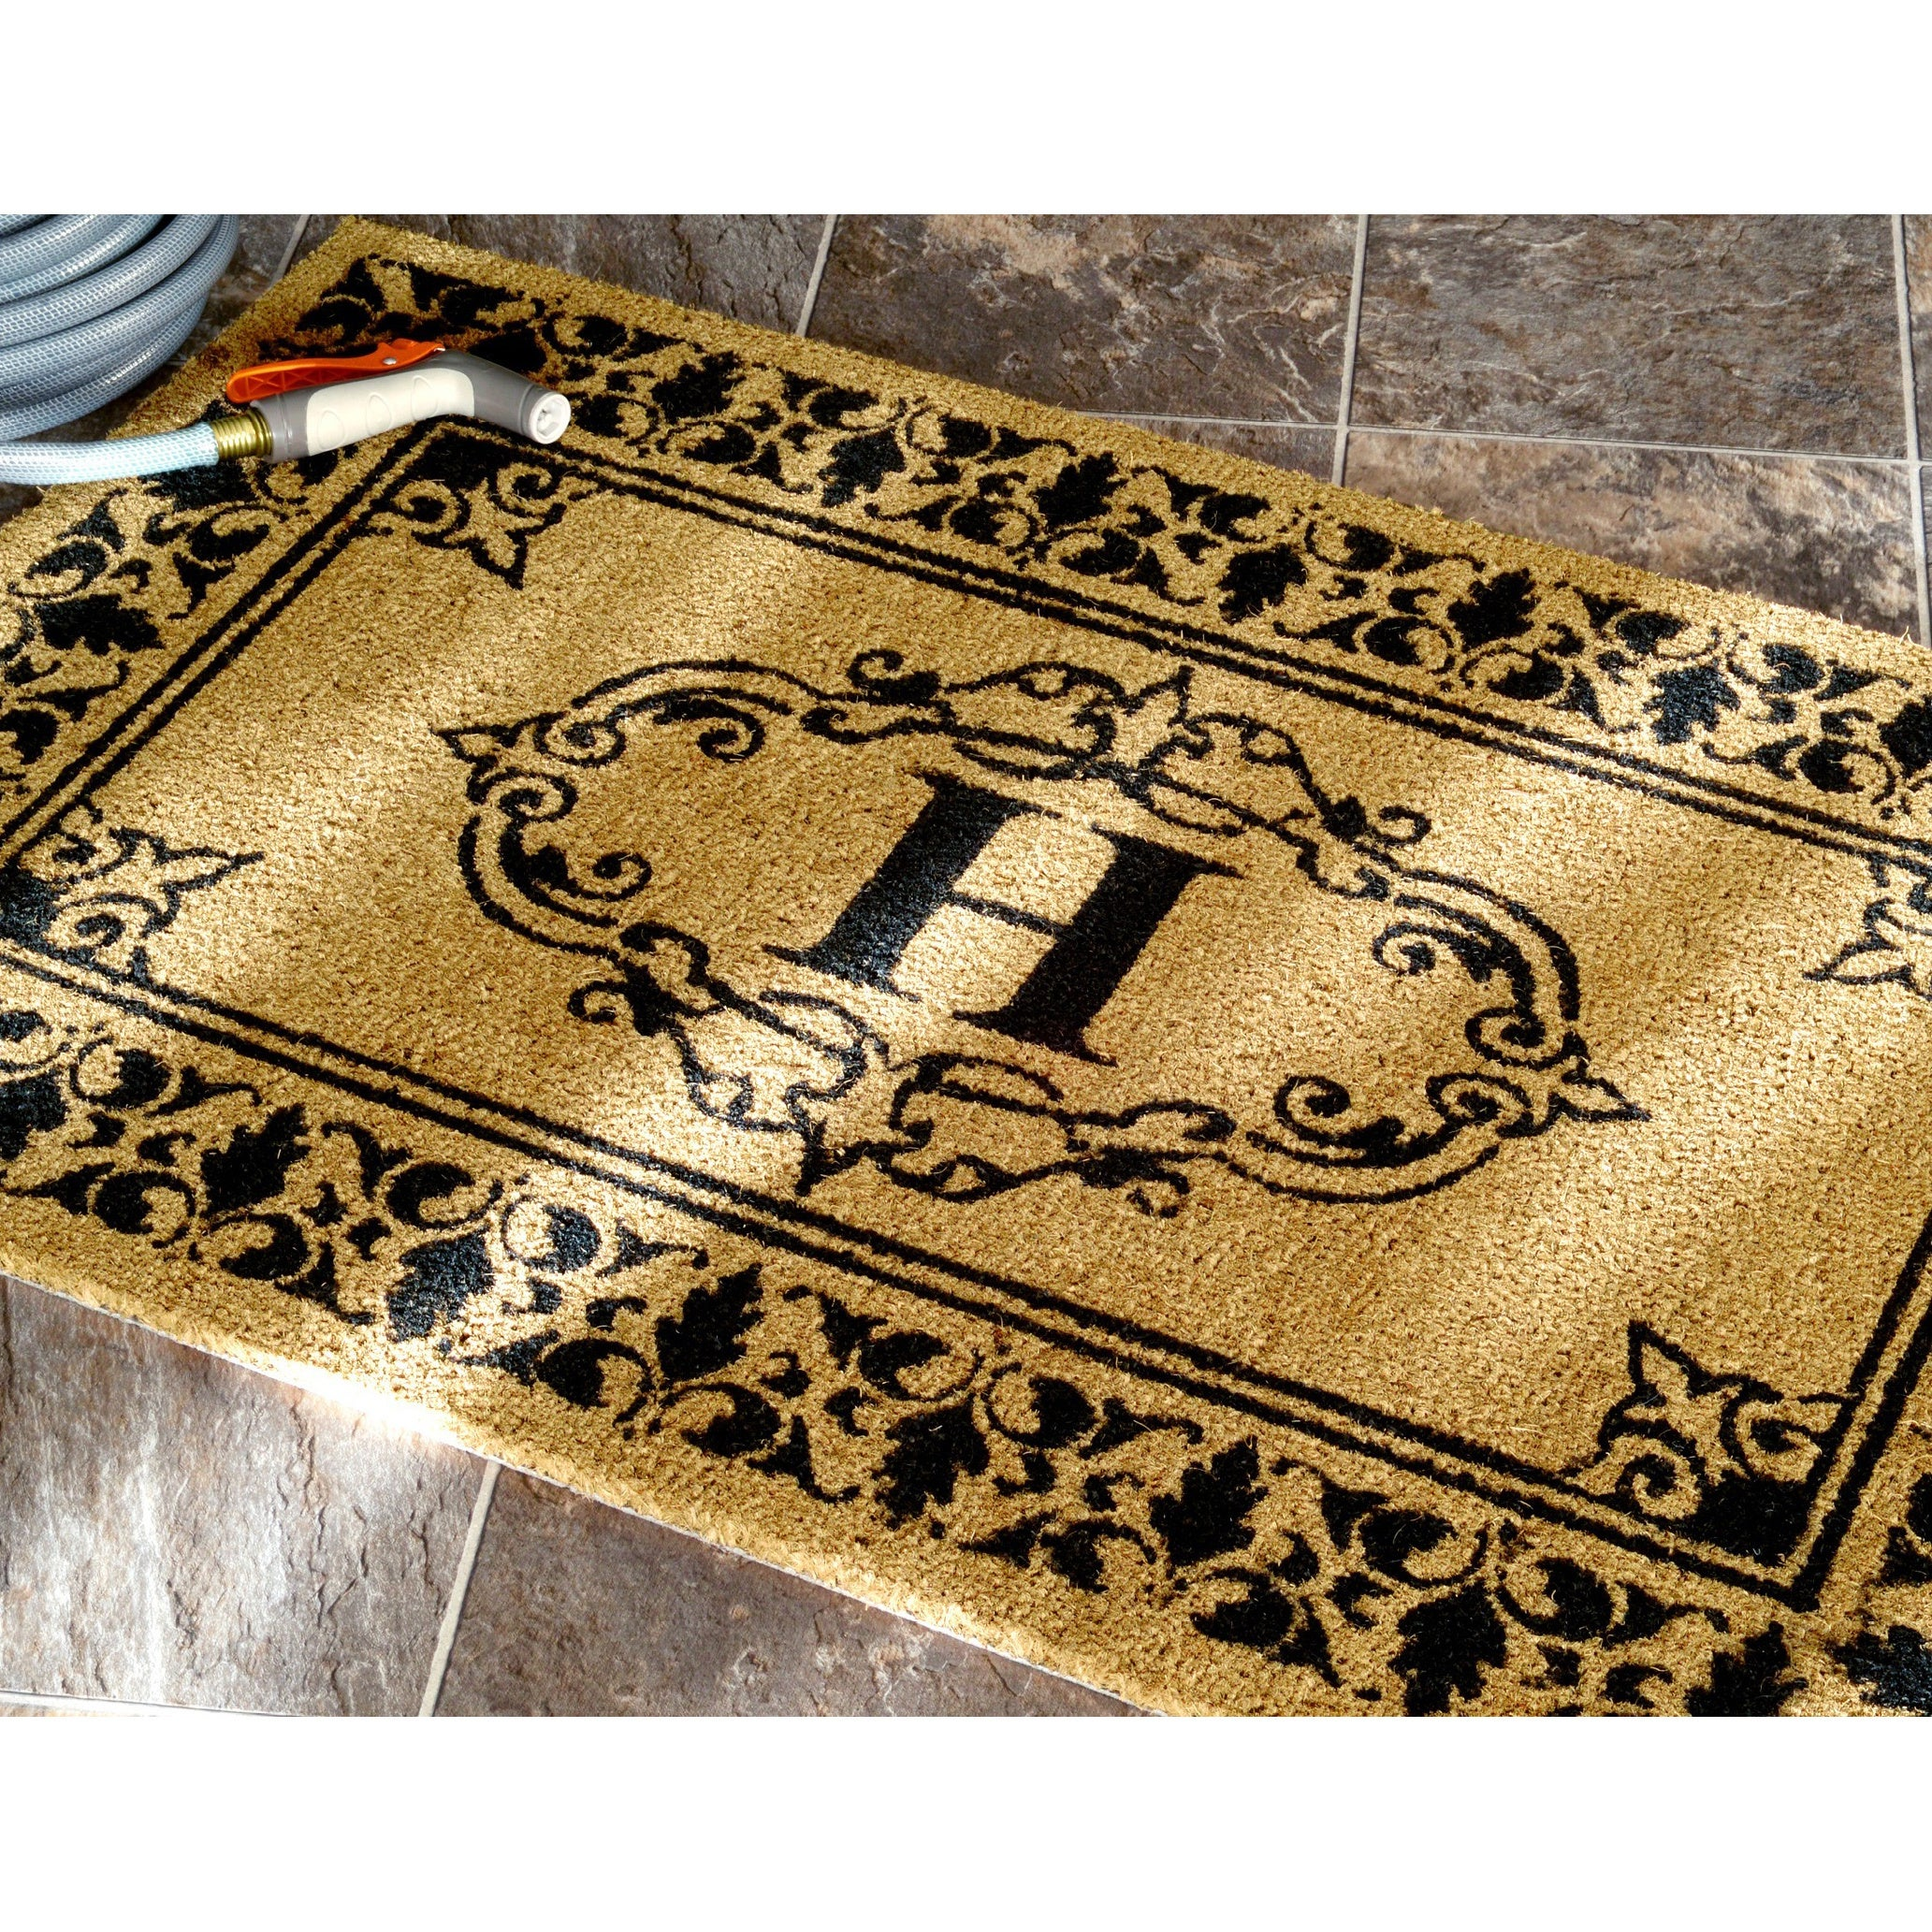 coir doormat personalized coco customized doormats welcome door monogrammed mat w